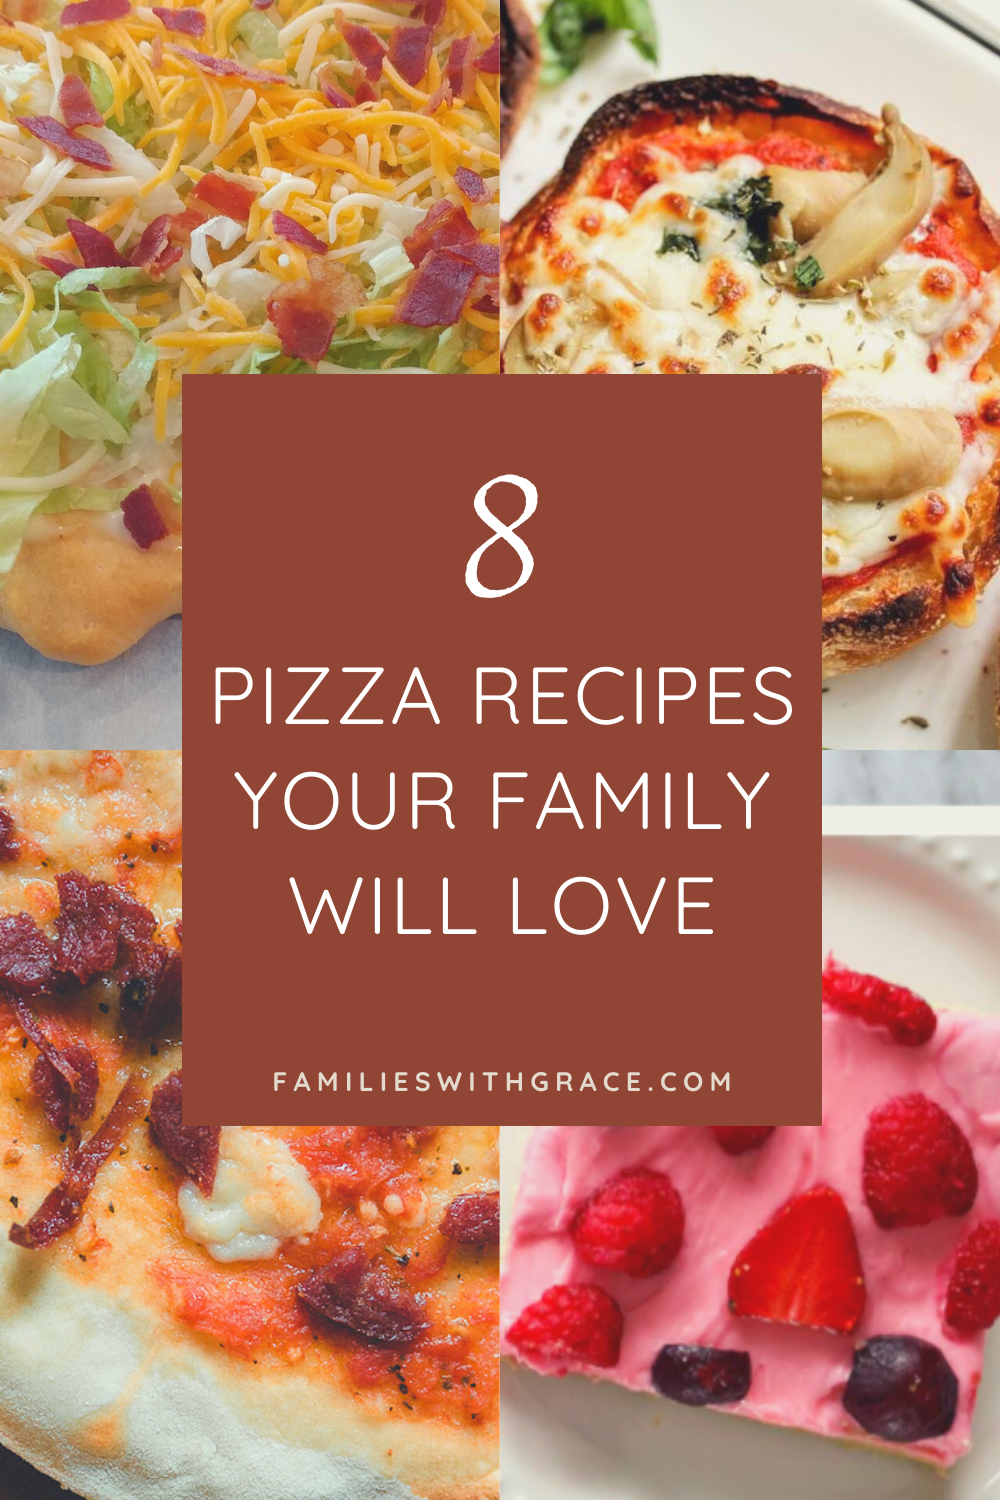 8 Pizza recipes your family will love